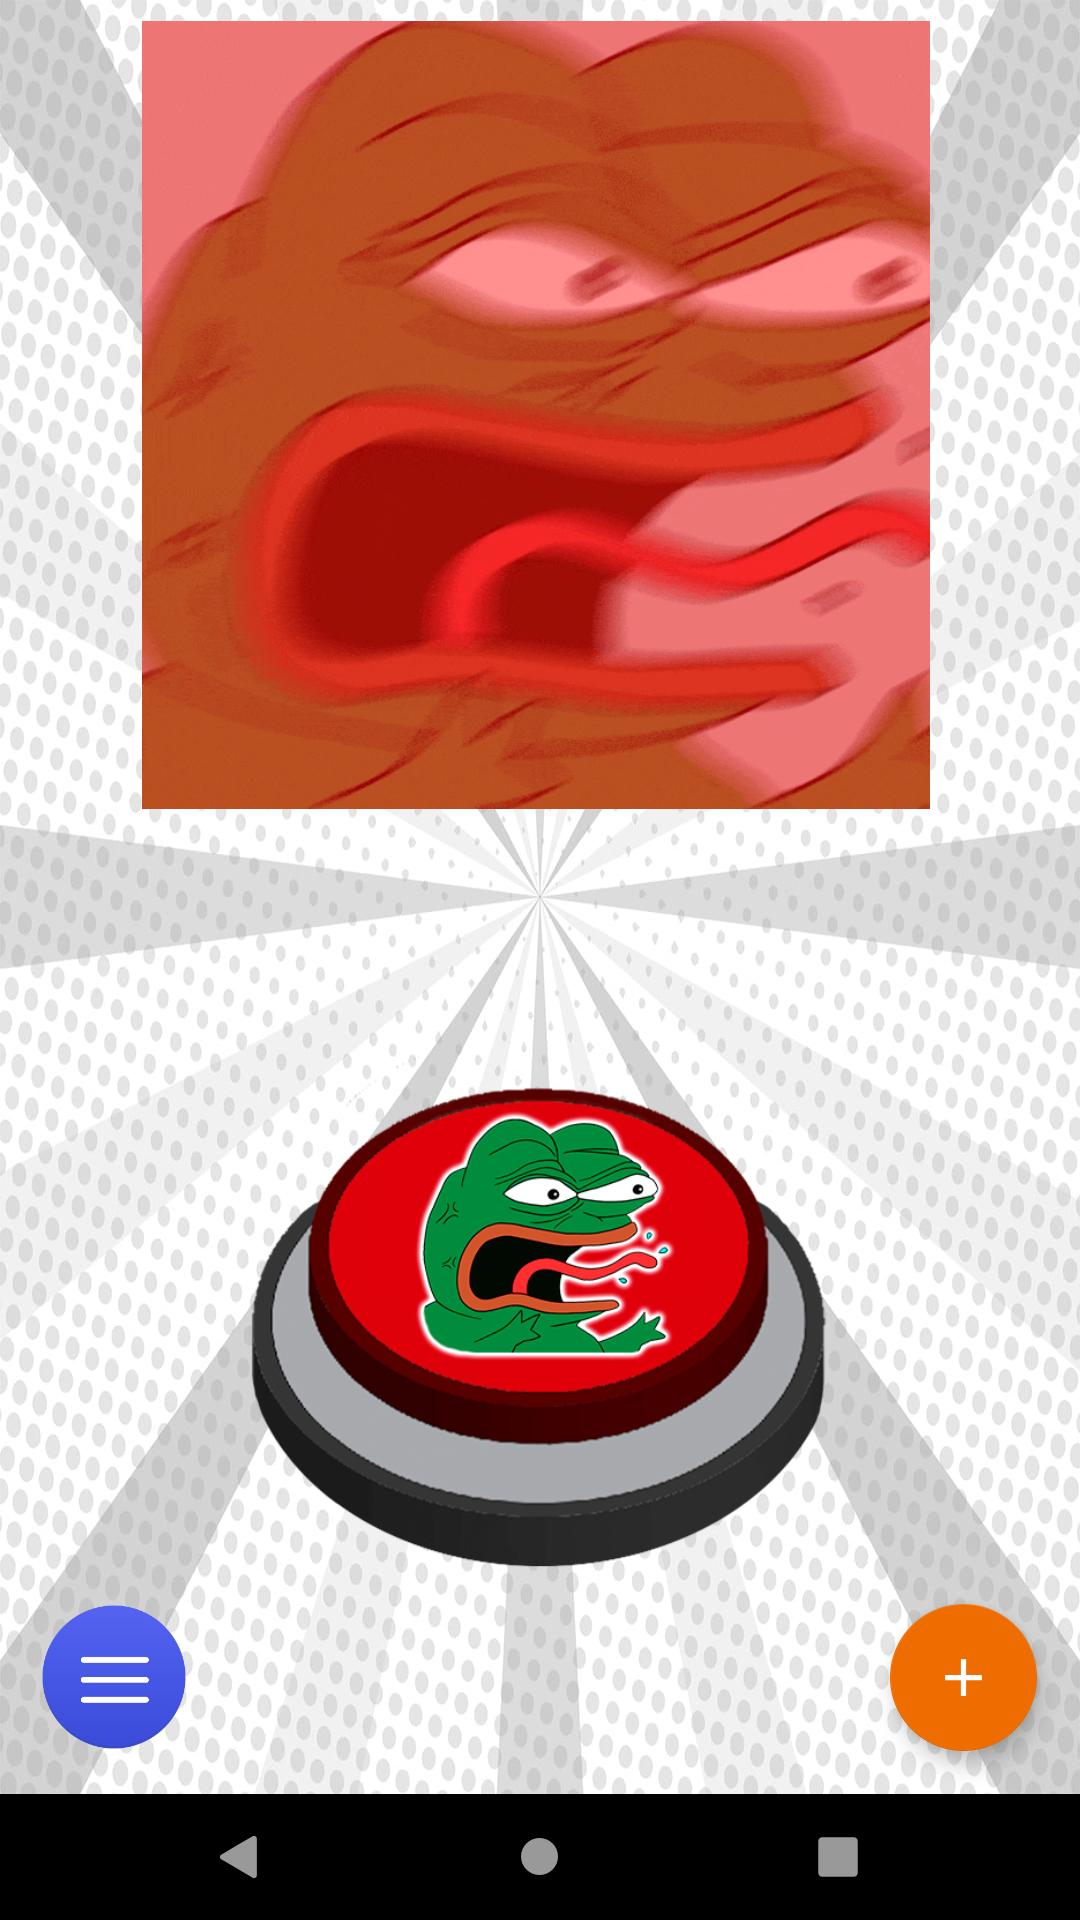 Pepe Reeee Angry Meme Prank Button For Android Apk Download